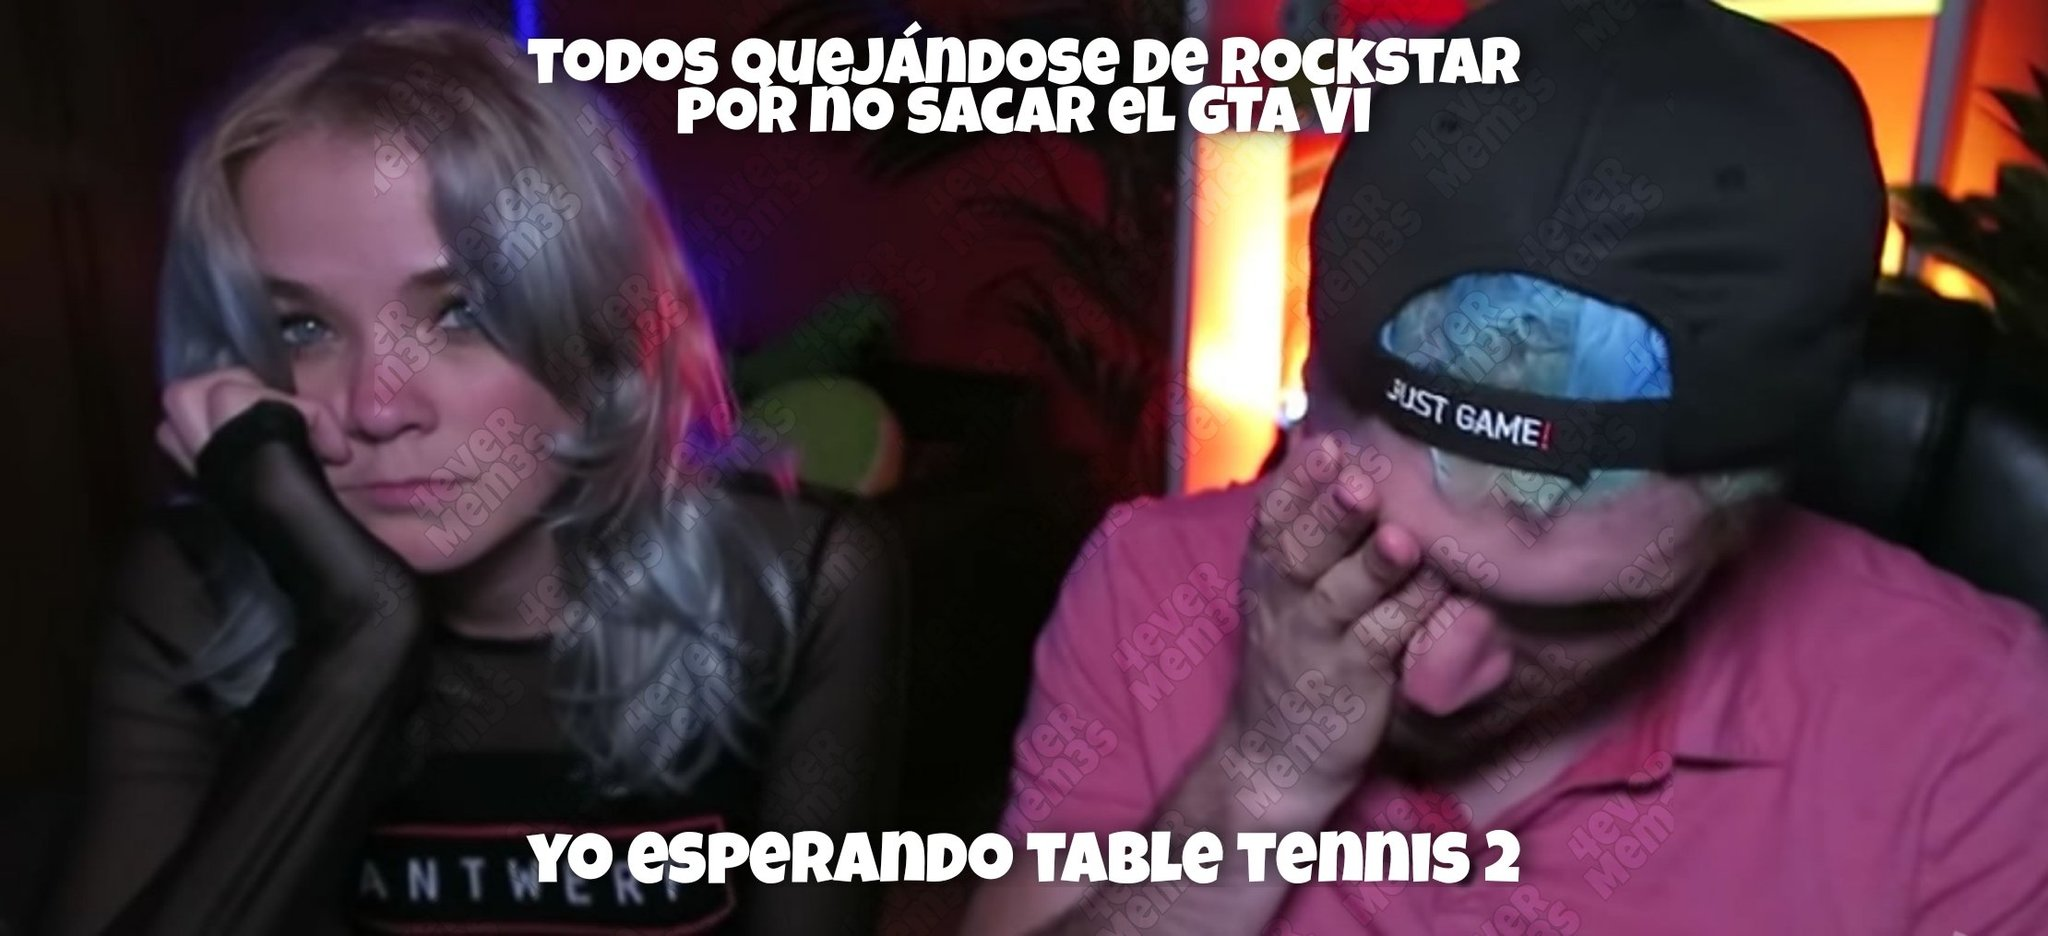 Table tennis >;( - meme